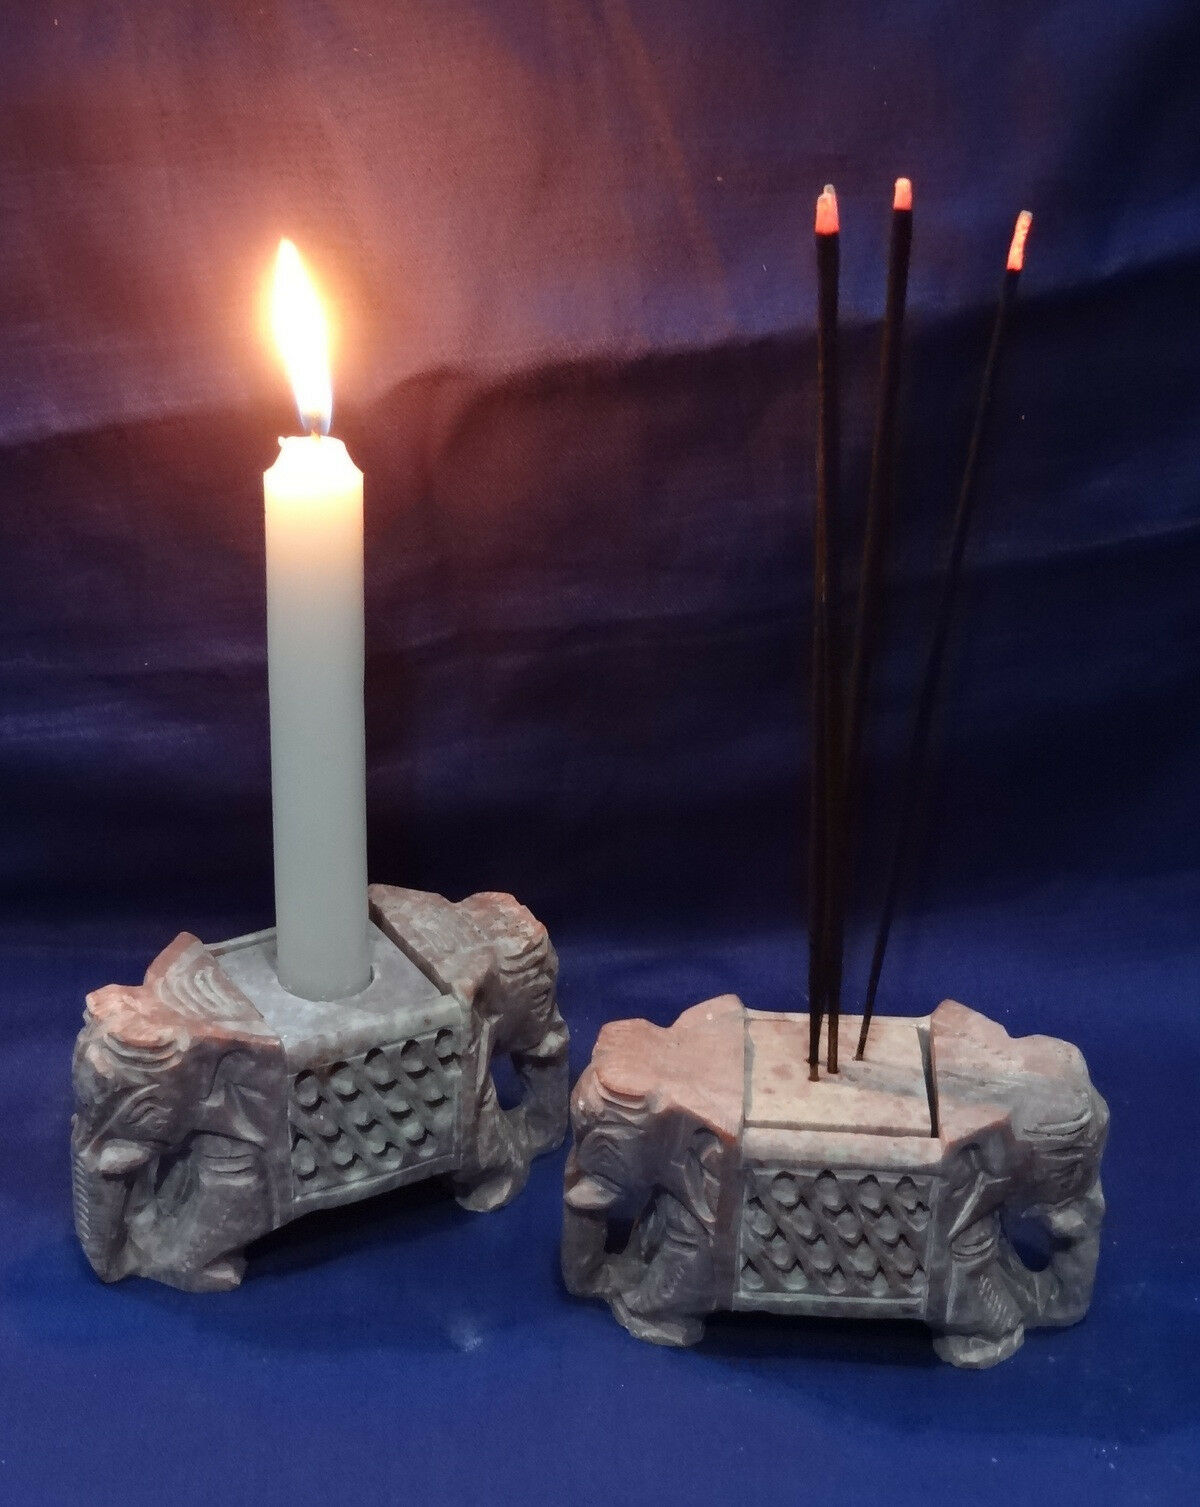 2 Marble Candle Holder Stand Handmade Arts Elephant Design Home Decor Art Gifts